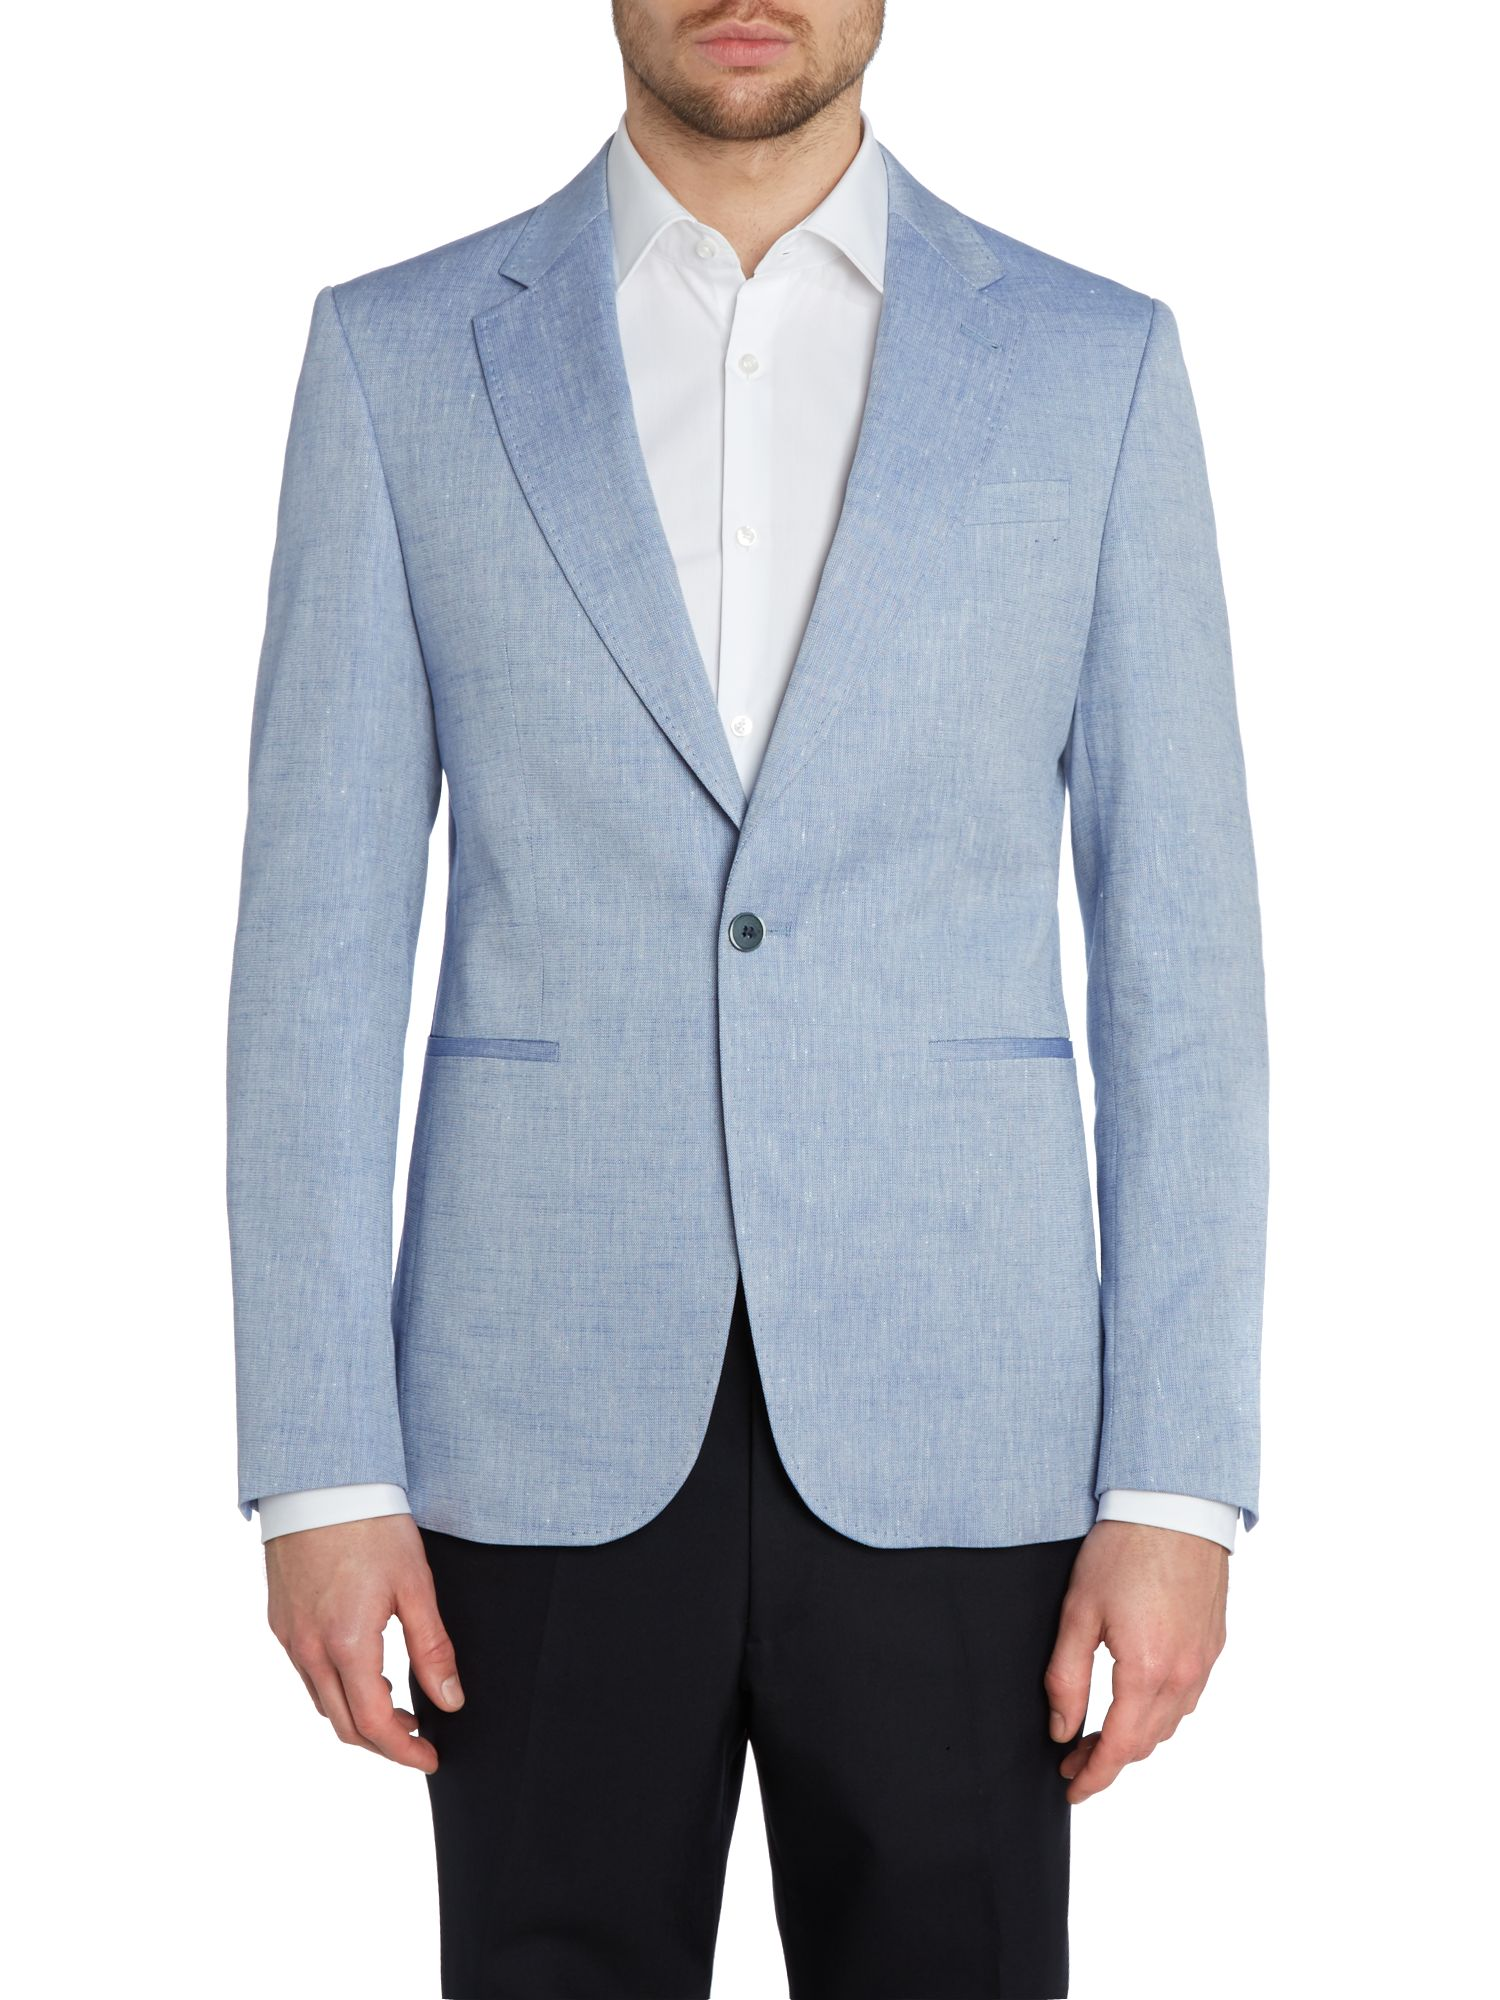 Textured linen mix regular fit jacket